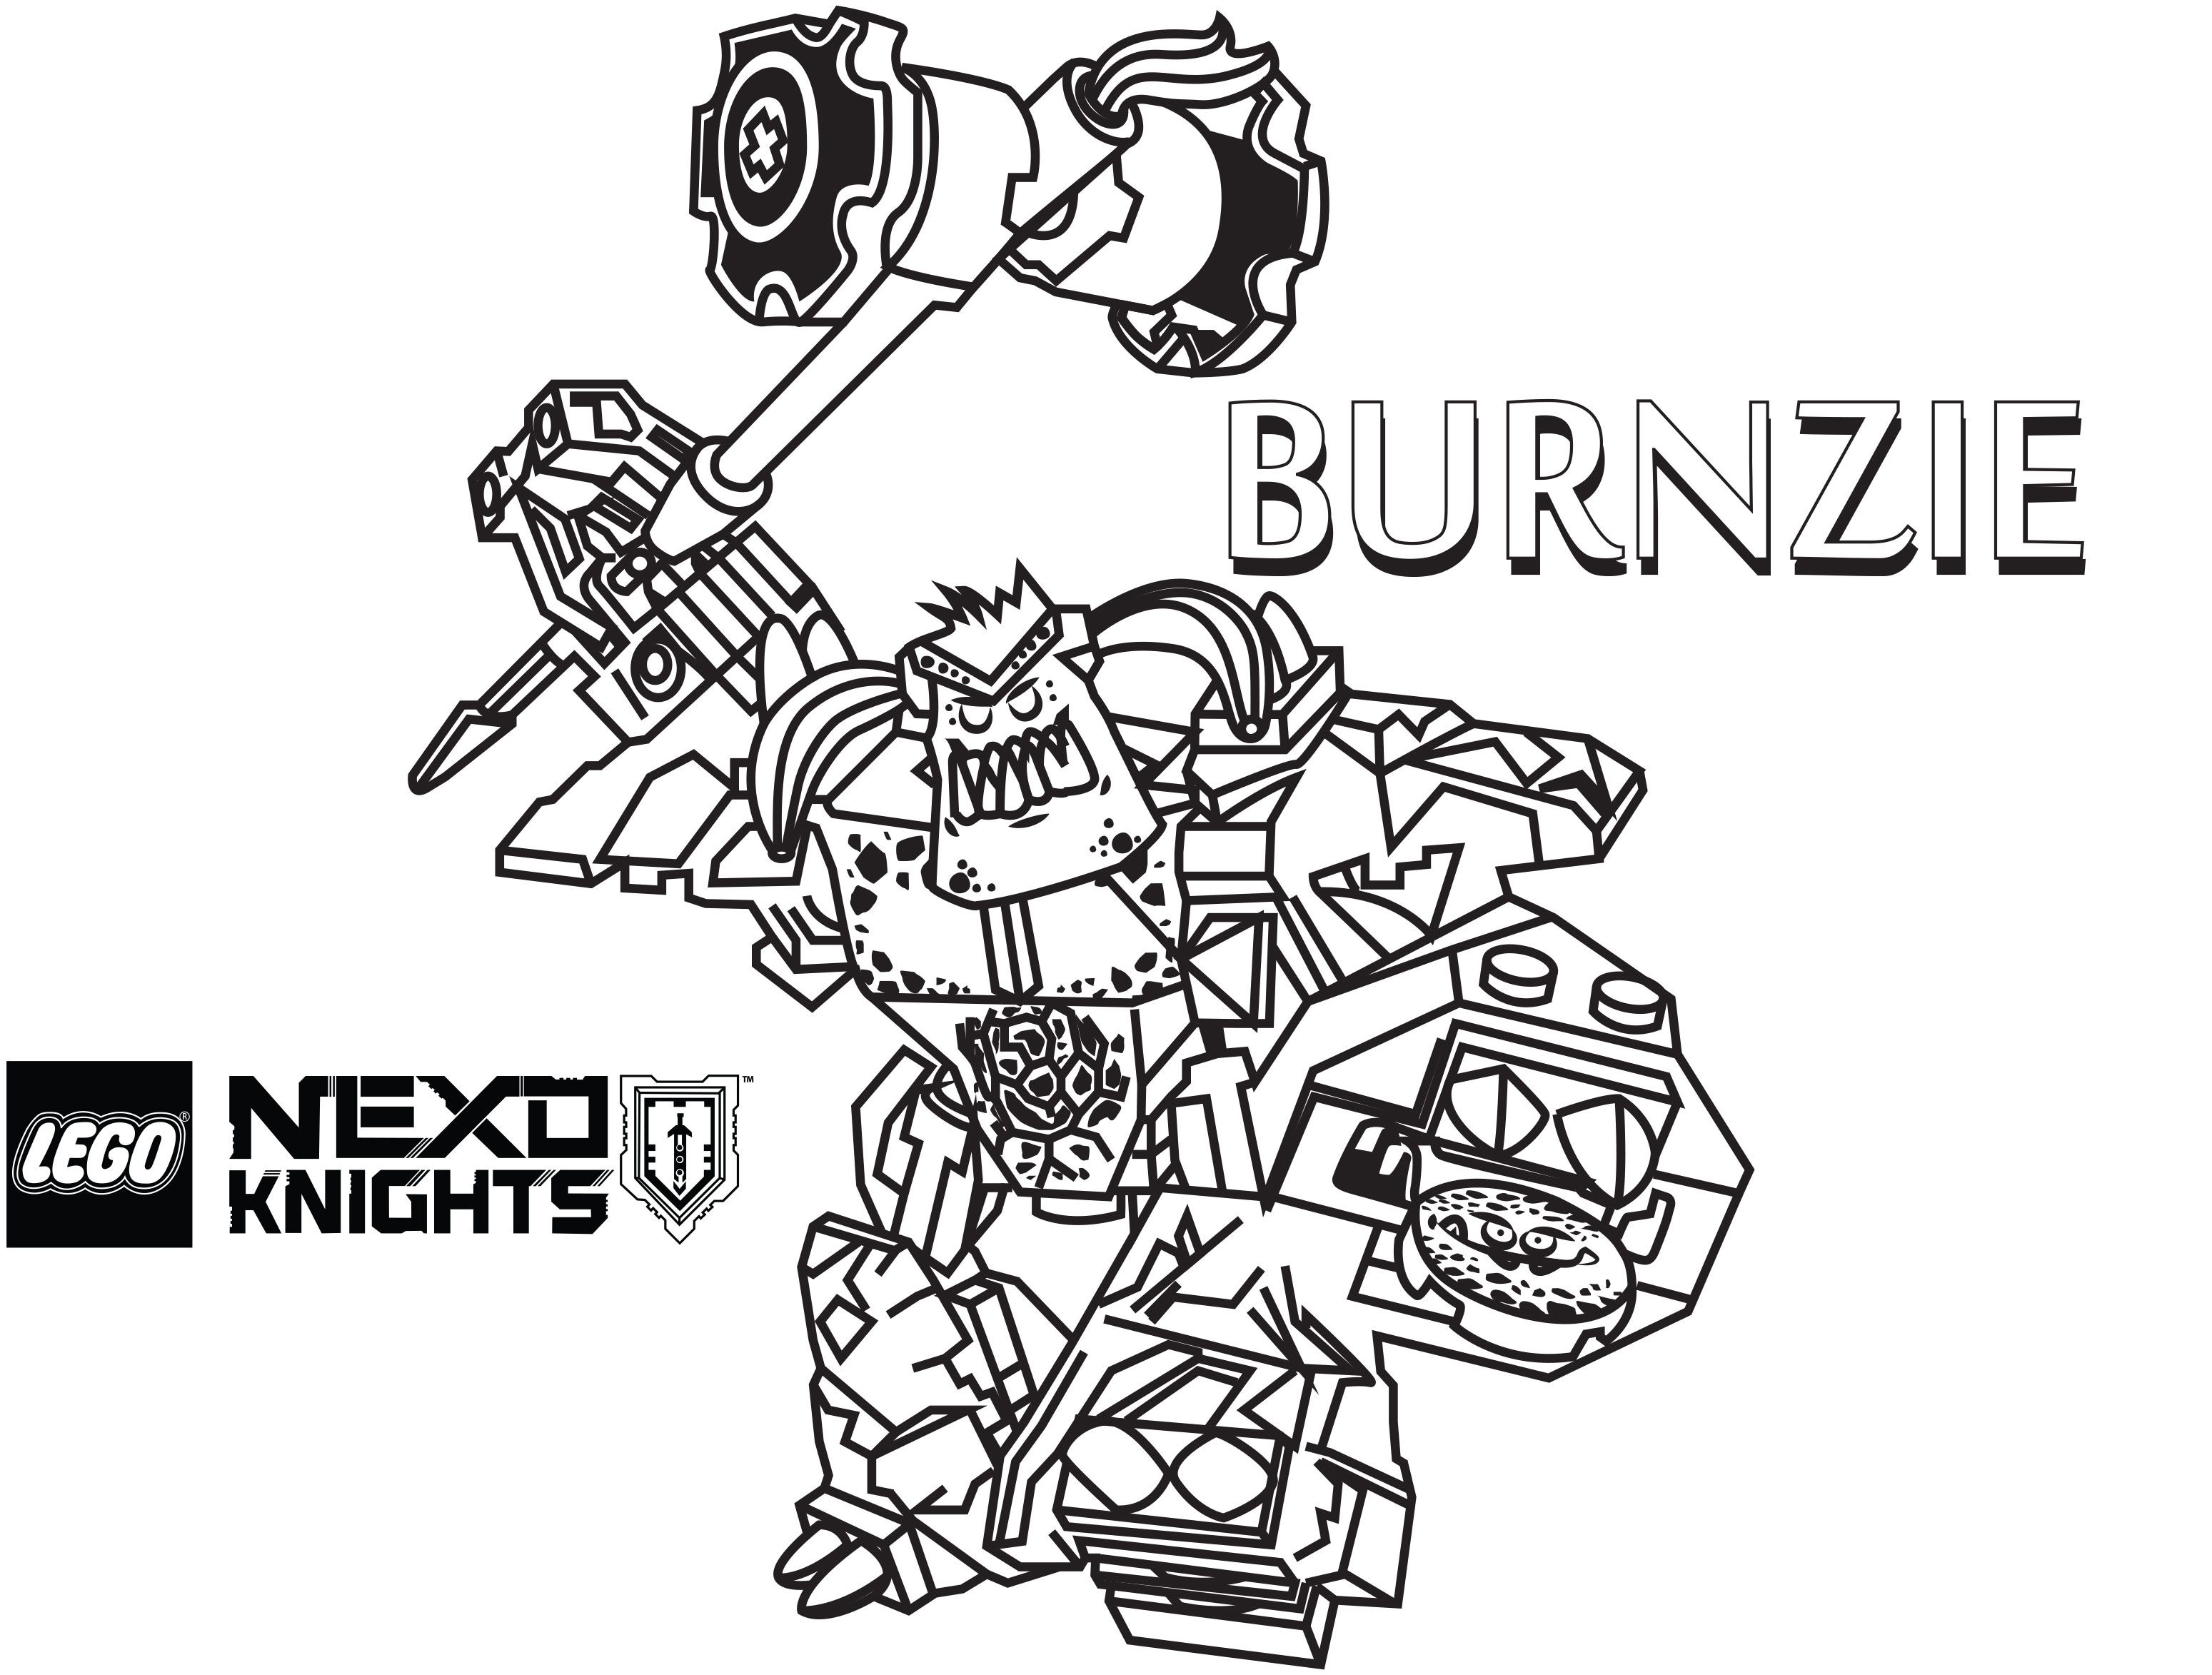 - LEGO Nexo Knights Coloring Pages : Free Printable LEGO Nexo